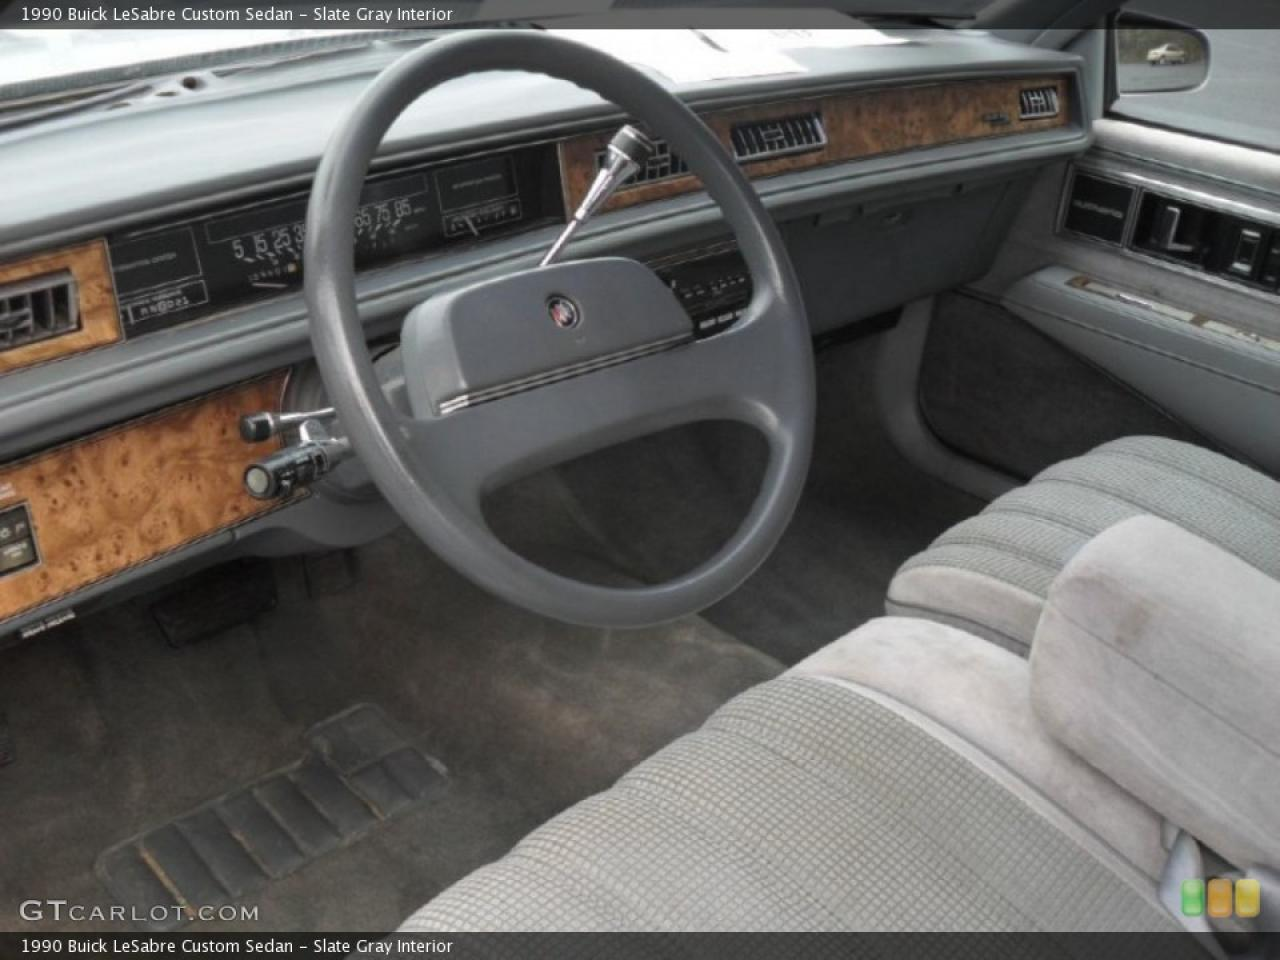 Hqdefault in addition Buick Lesabre as well Buick Reatta Std Coupe Pic X likewise Maxresdefault additionally Buick Blackhawk. on 1989 buick lesabre